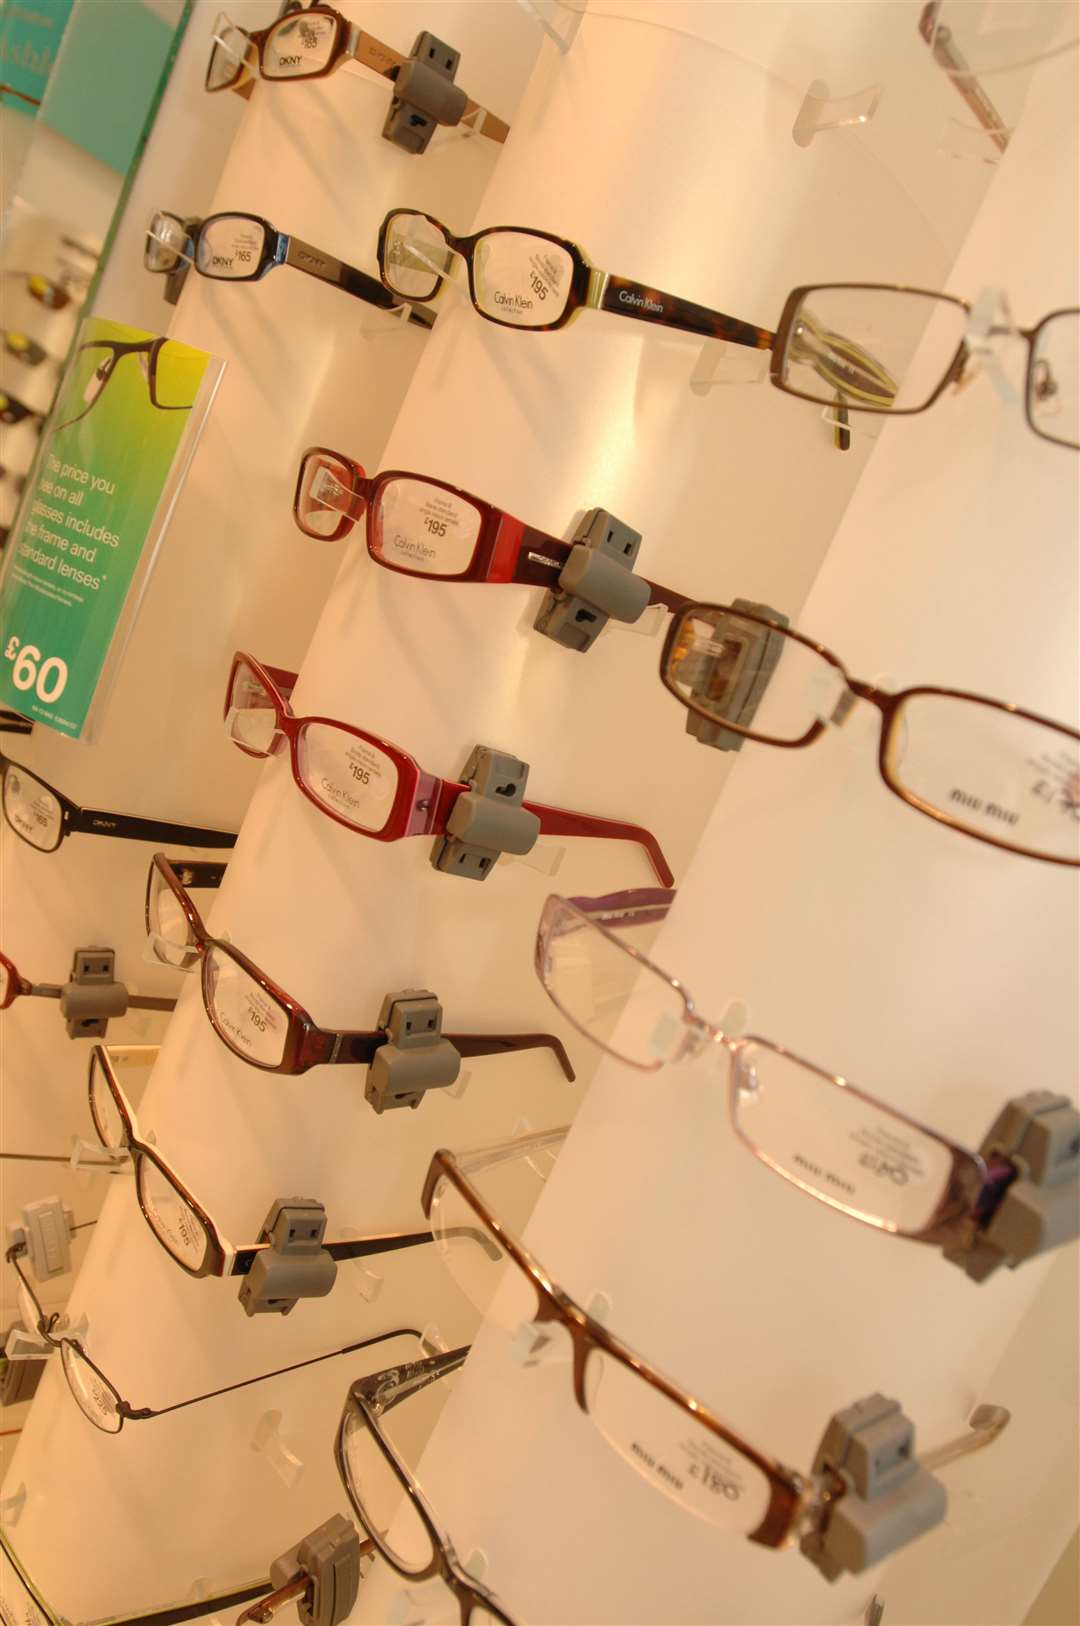 Boots Opticians is closing temporarily